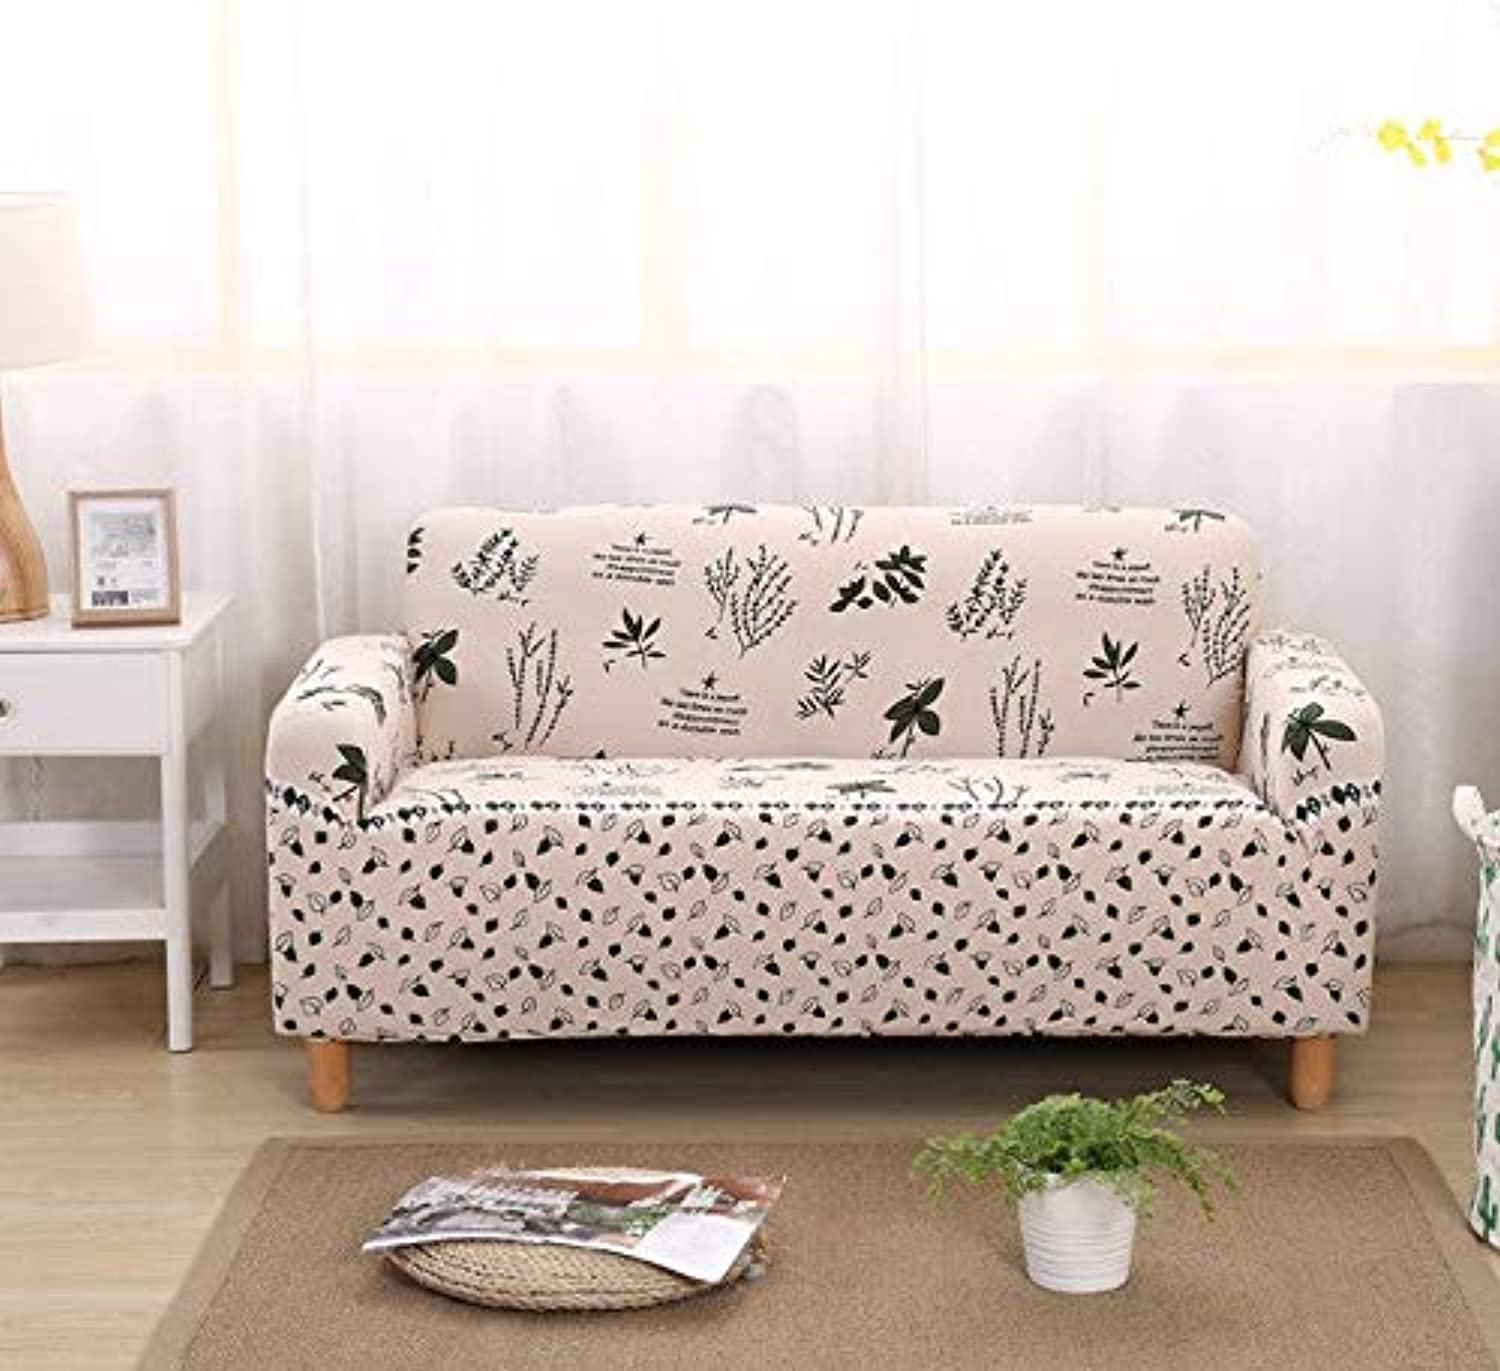 Elastic Sofa Covers for Living Room Sofa Towel Slip-Resistant Sofa Cover Strech Sofa Slipcover 1 2 3 4 Seater   colour10, Two-Seater